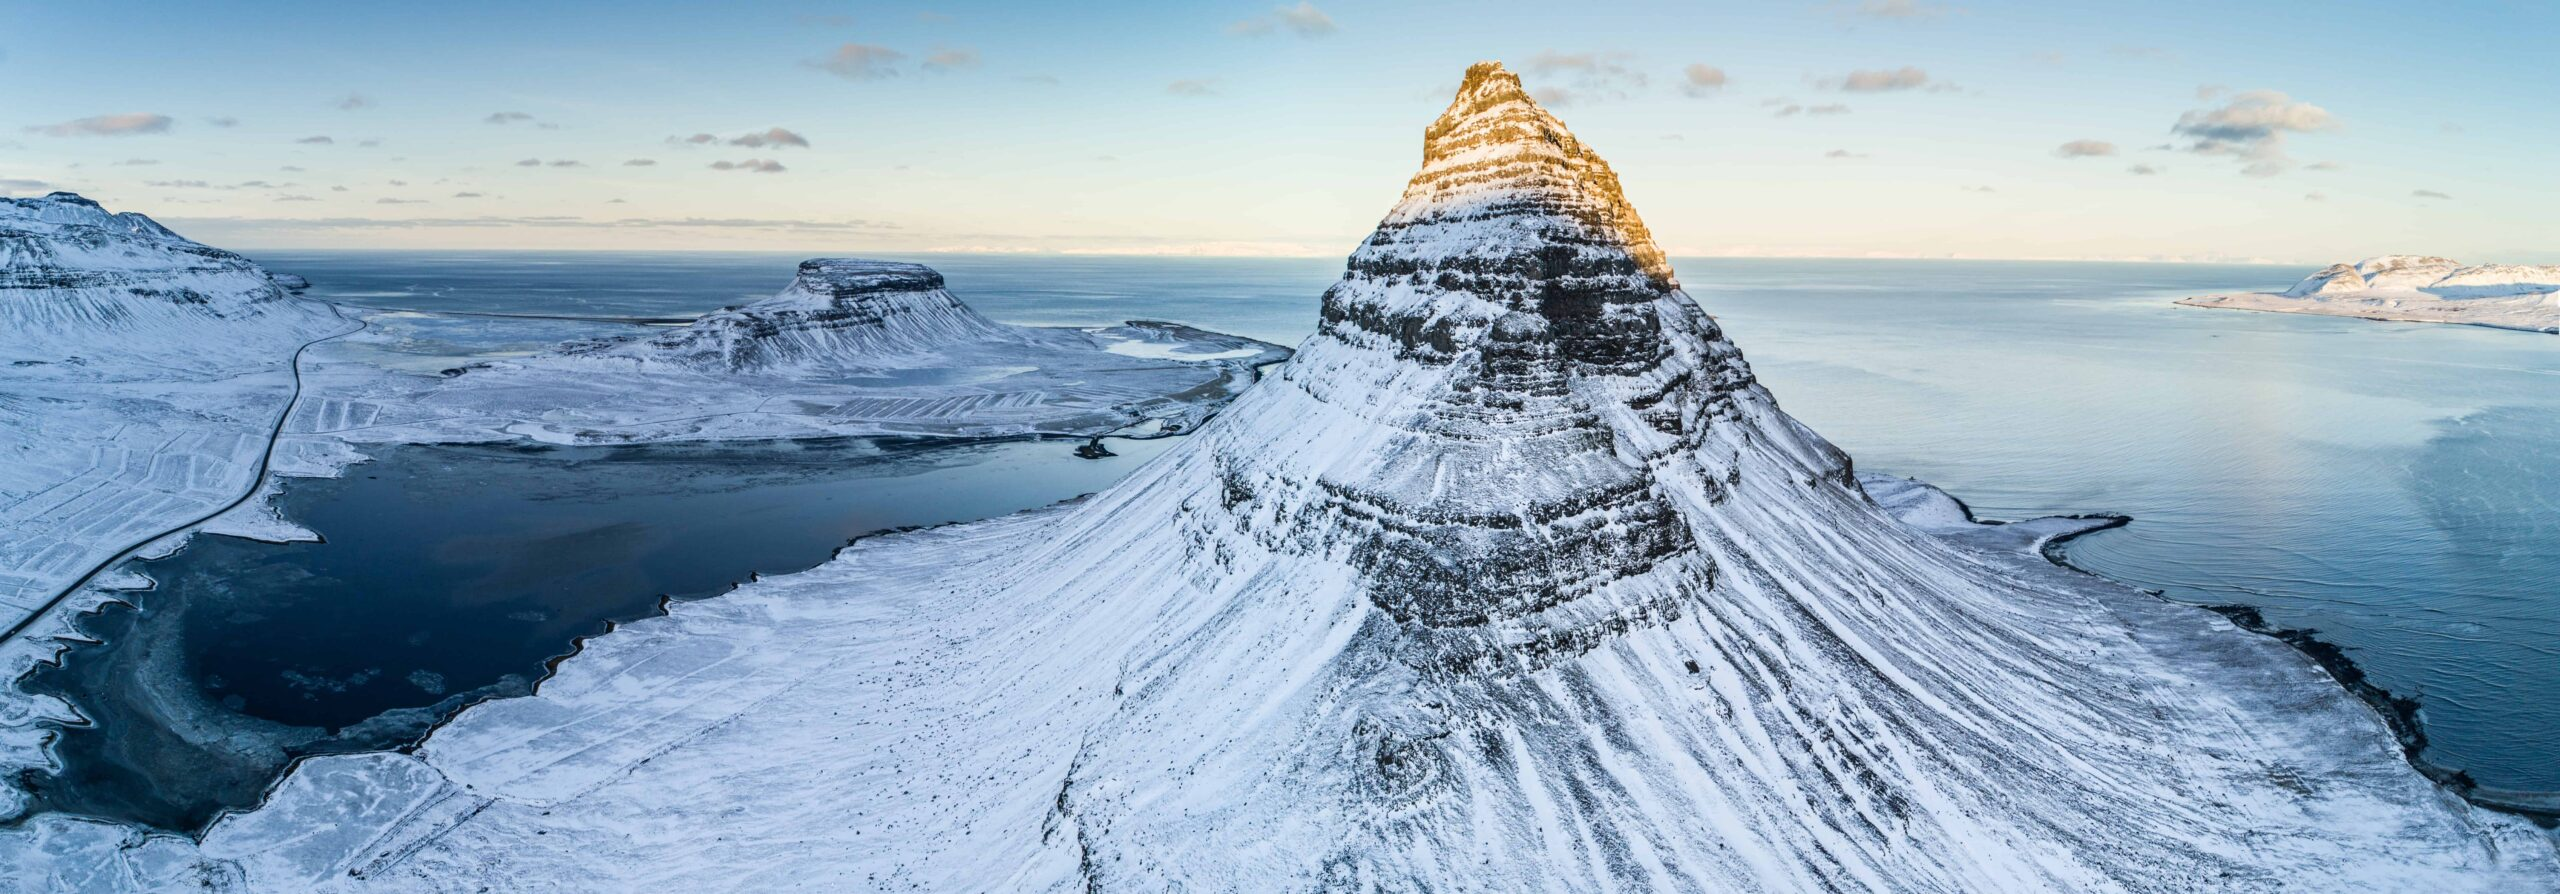 Kirkjufell mountain seen from above with snow during winter